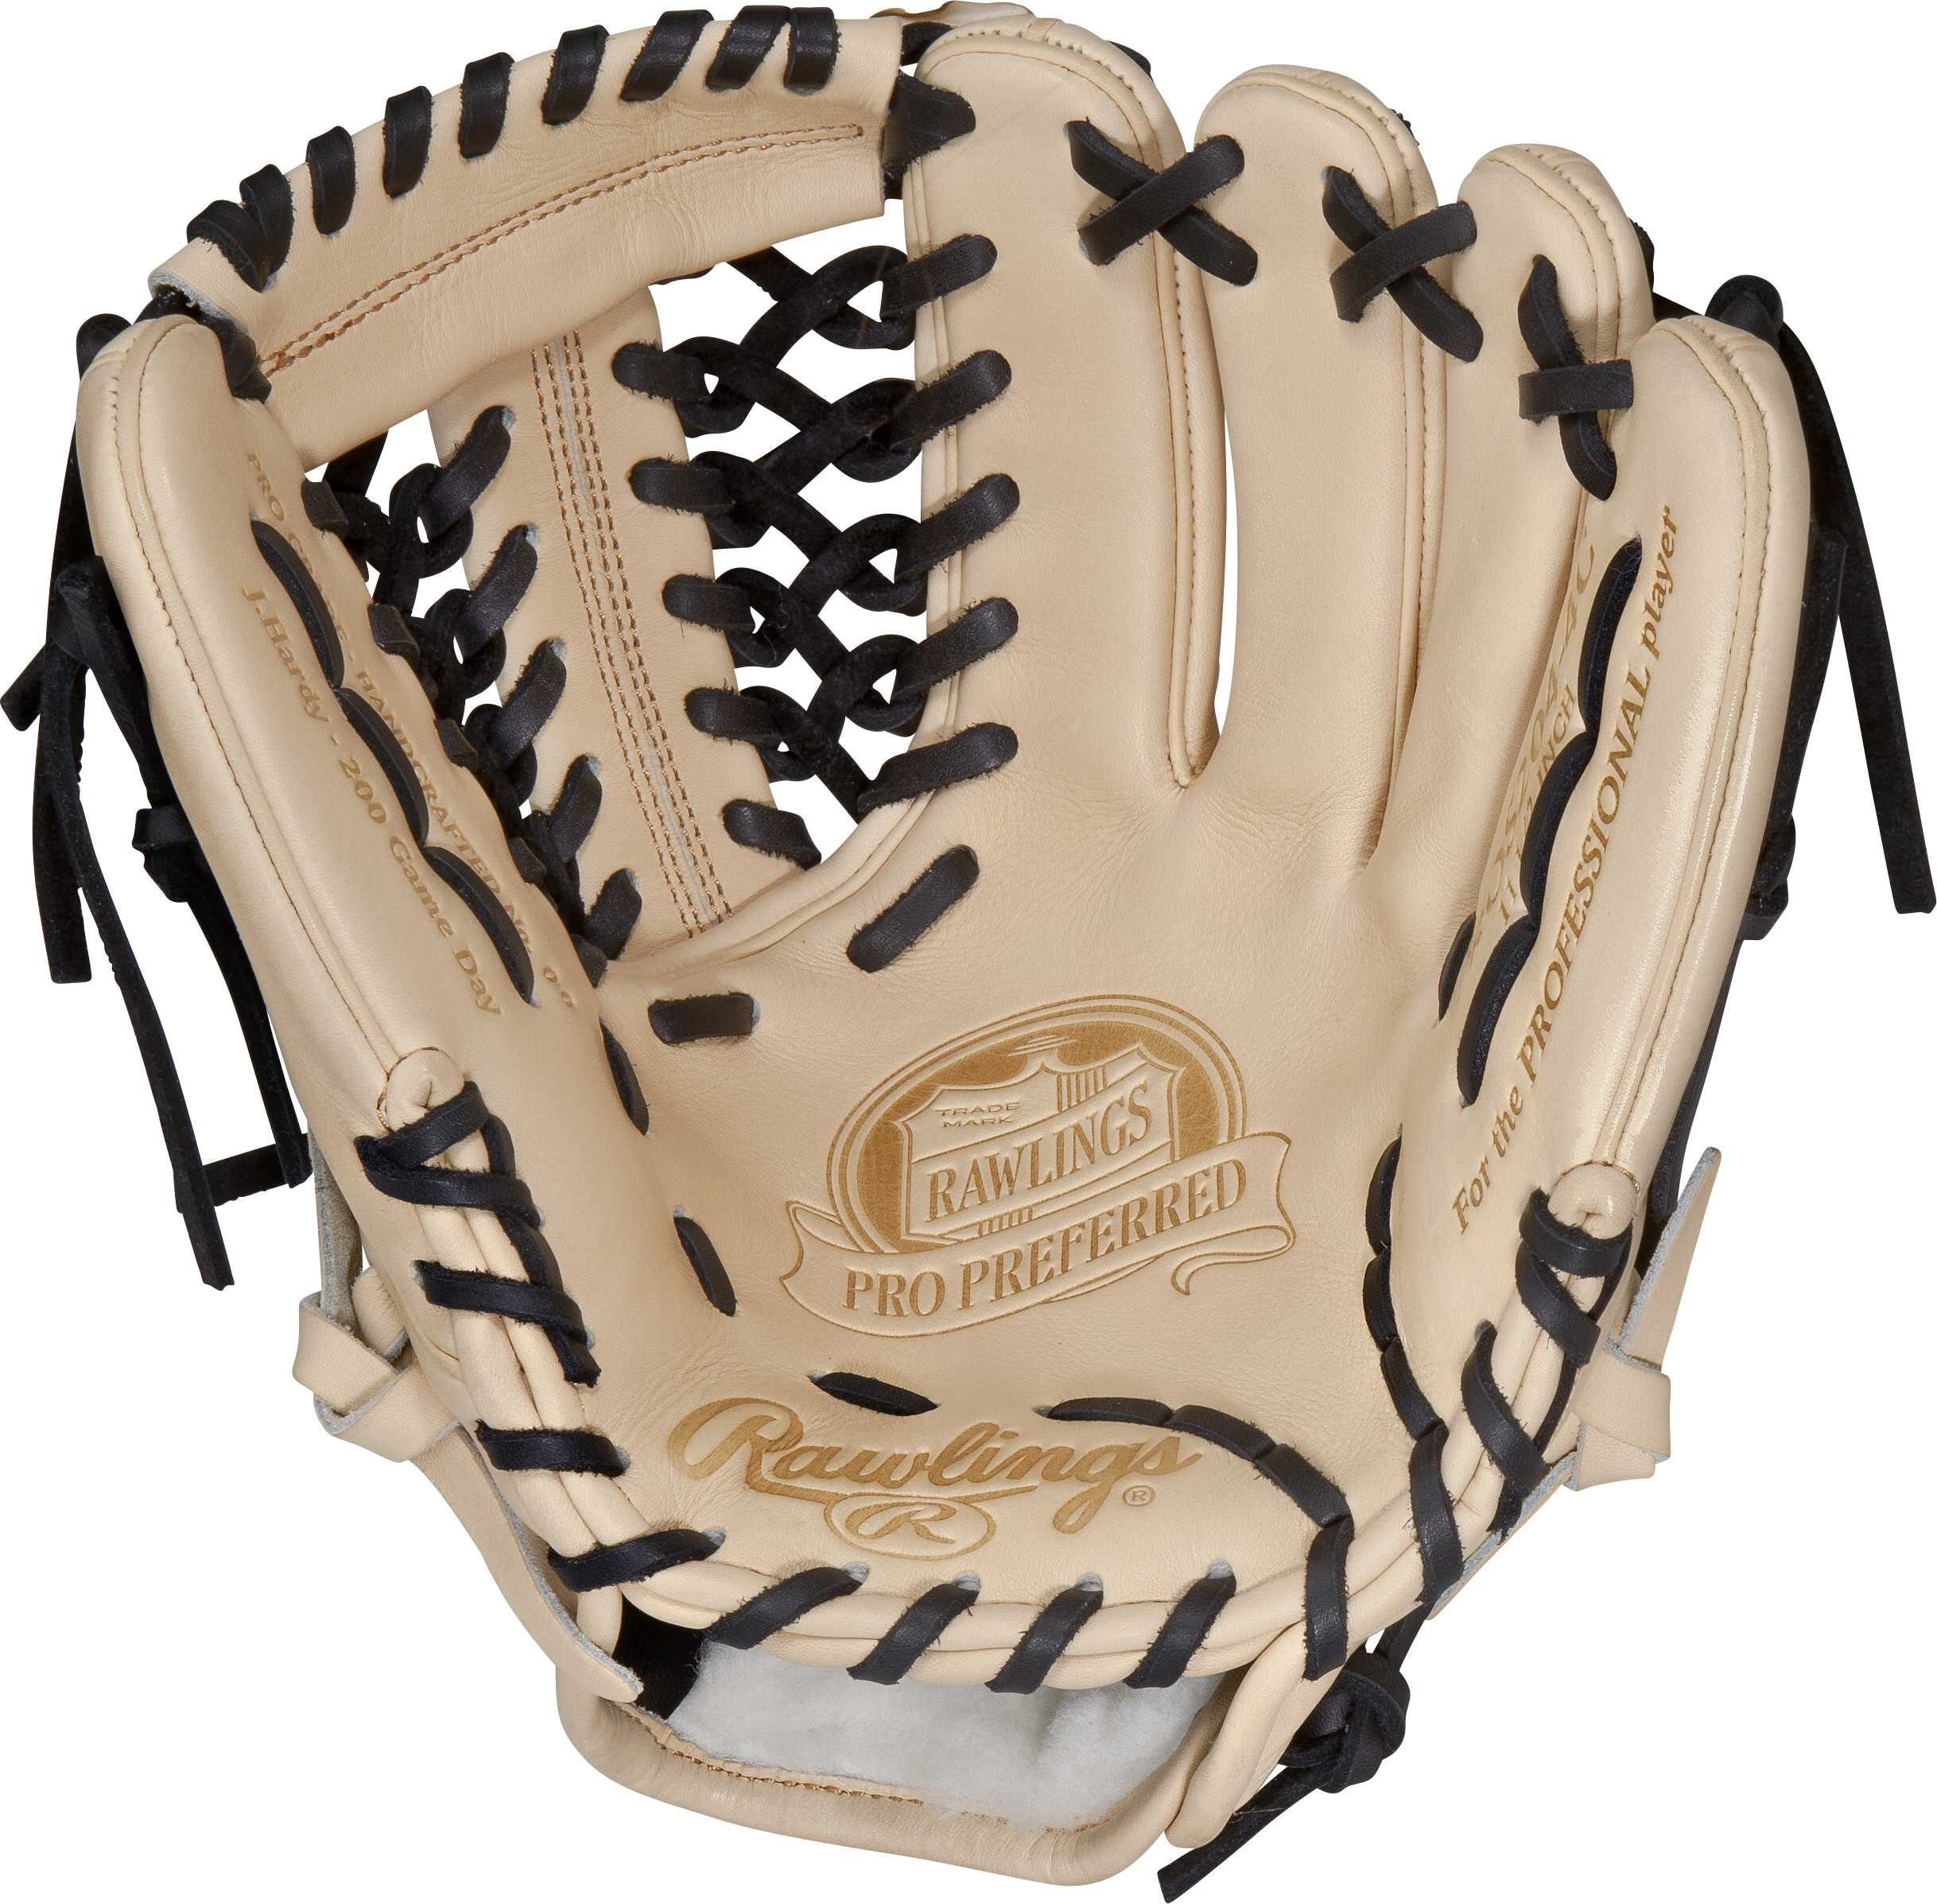 http://www.bestbatdeals.com/images/gloves/rawlings/PROS204-4C_palm.jpg